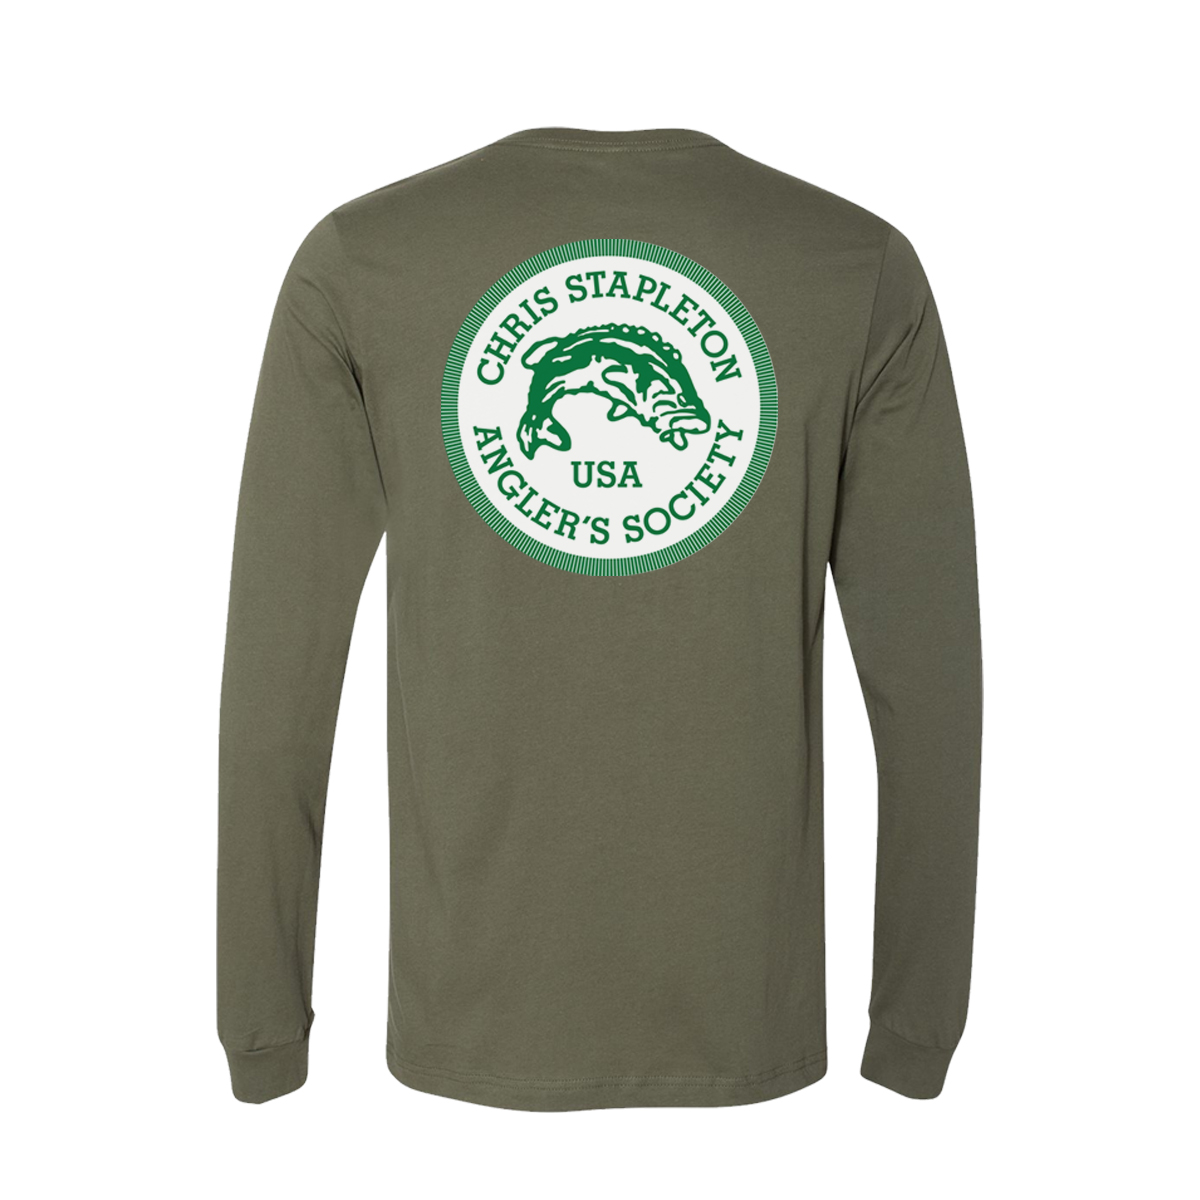 The Stapleton Angler's Society Long Sleeve T